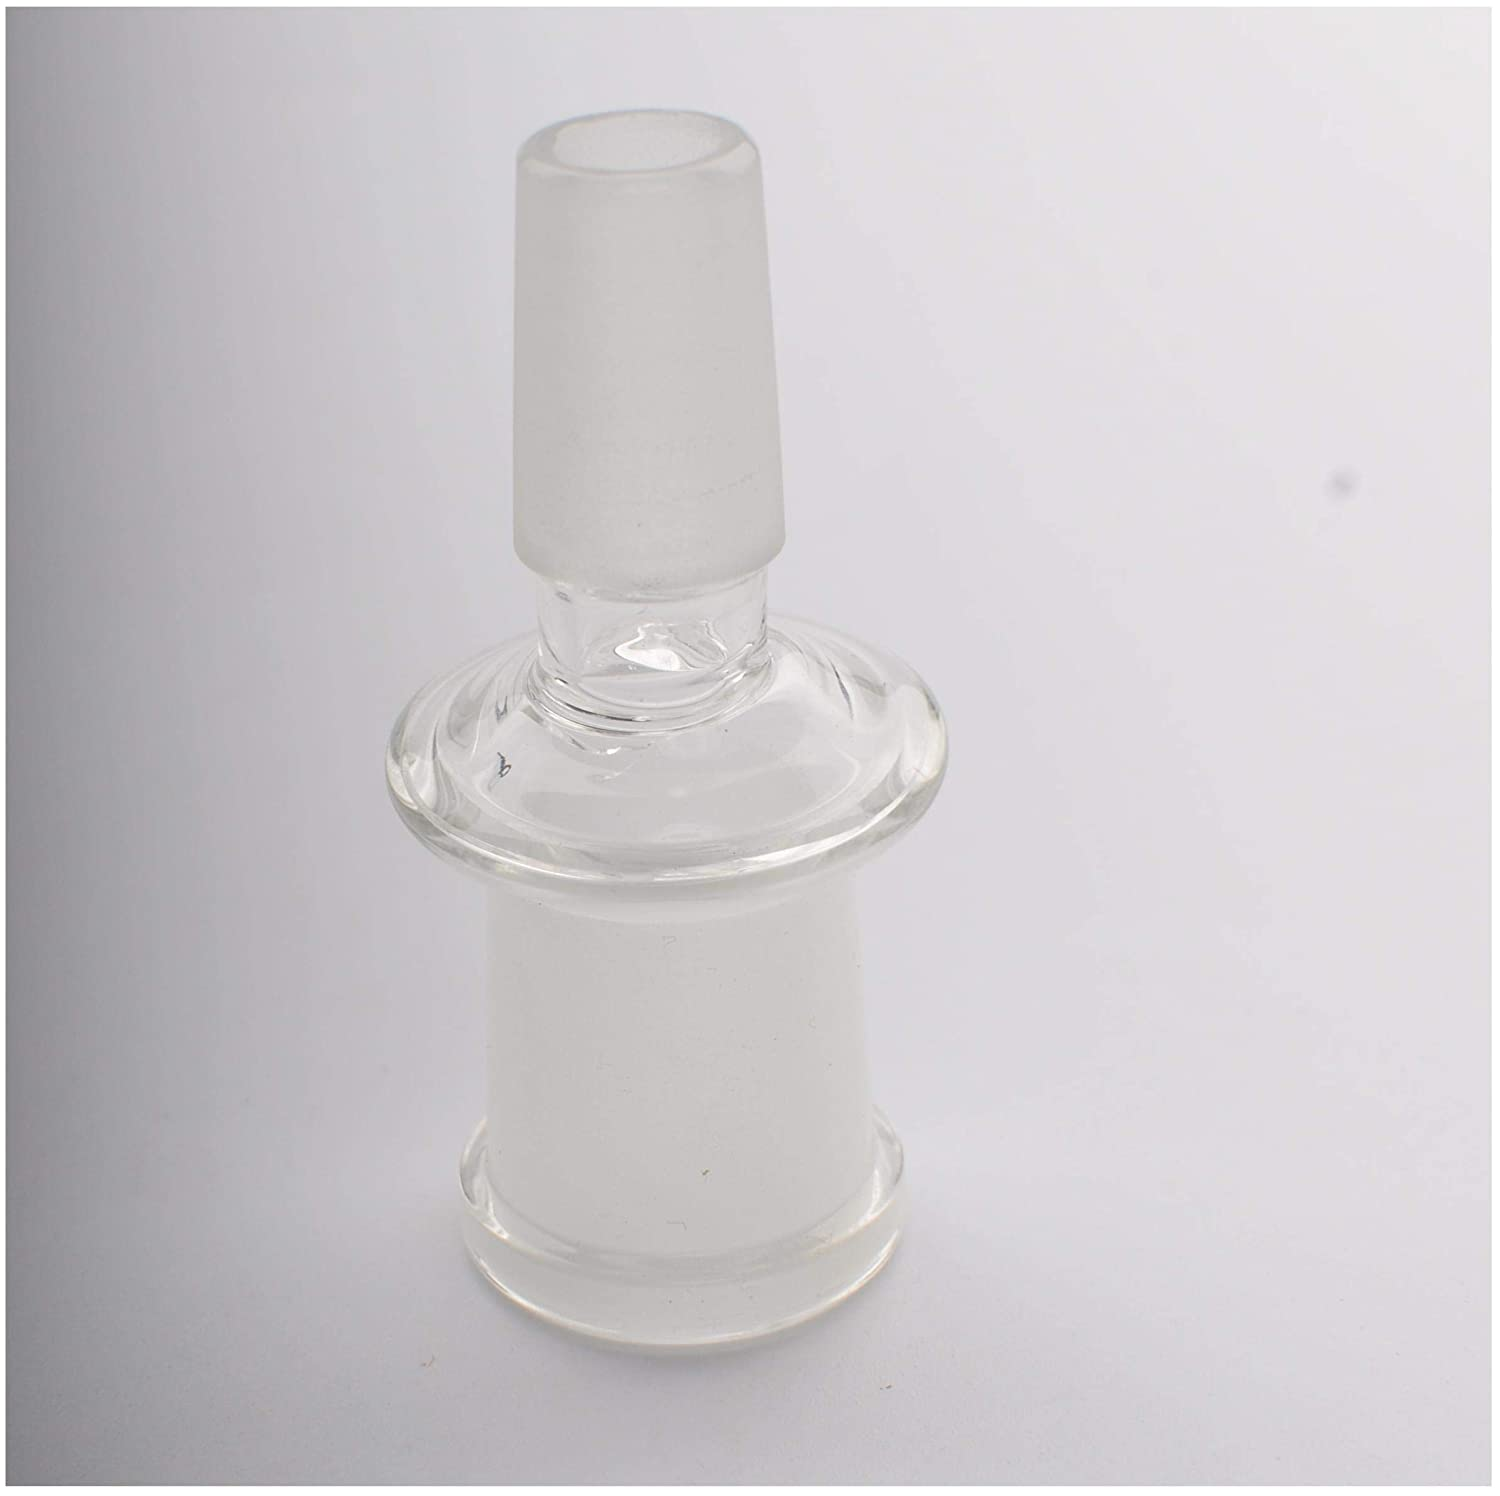 Glass Tube Adapter,18 mm Male to Female 18 mm Essential Adapter